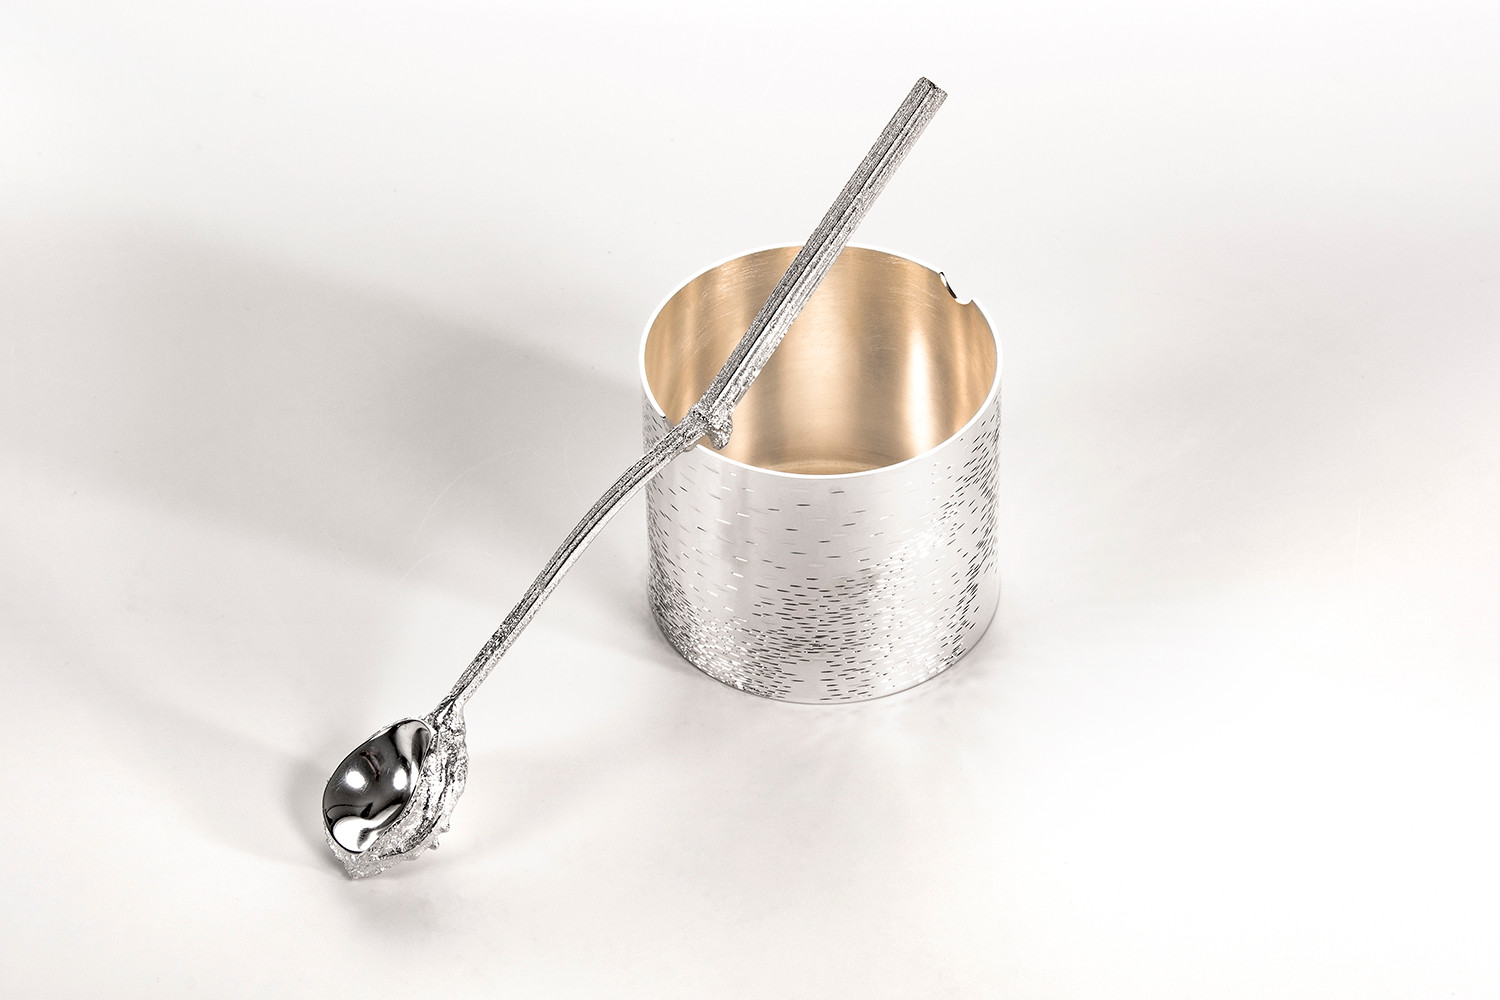 Rannoch Sugar Pot & Spoon, 2020.